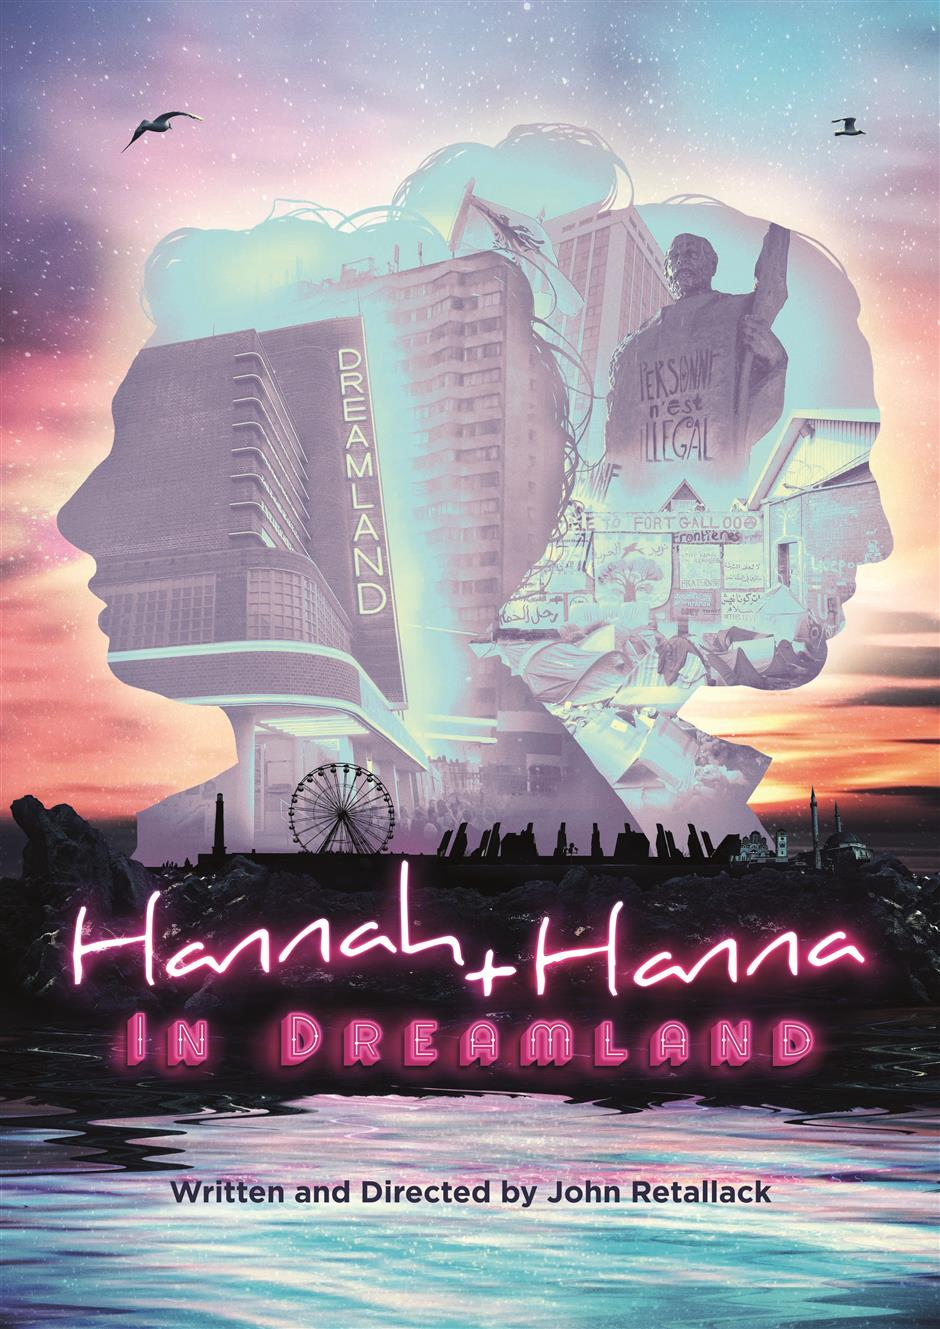 Hannah & Hanna in Dreamland